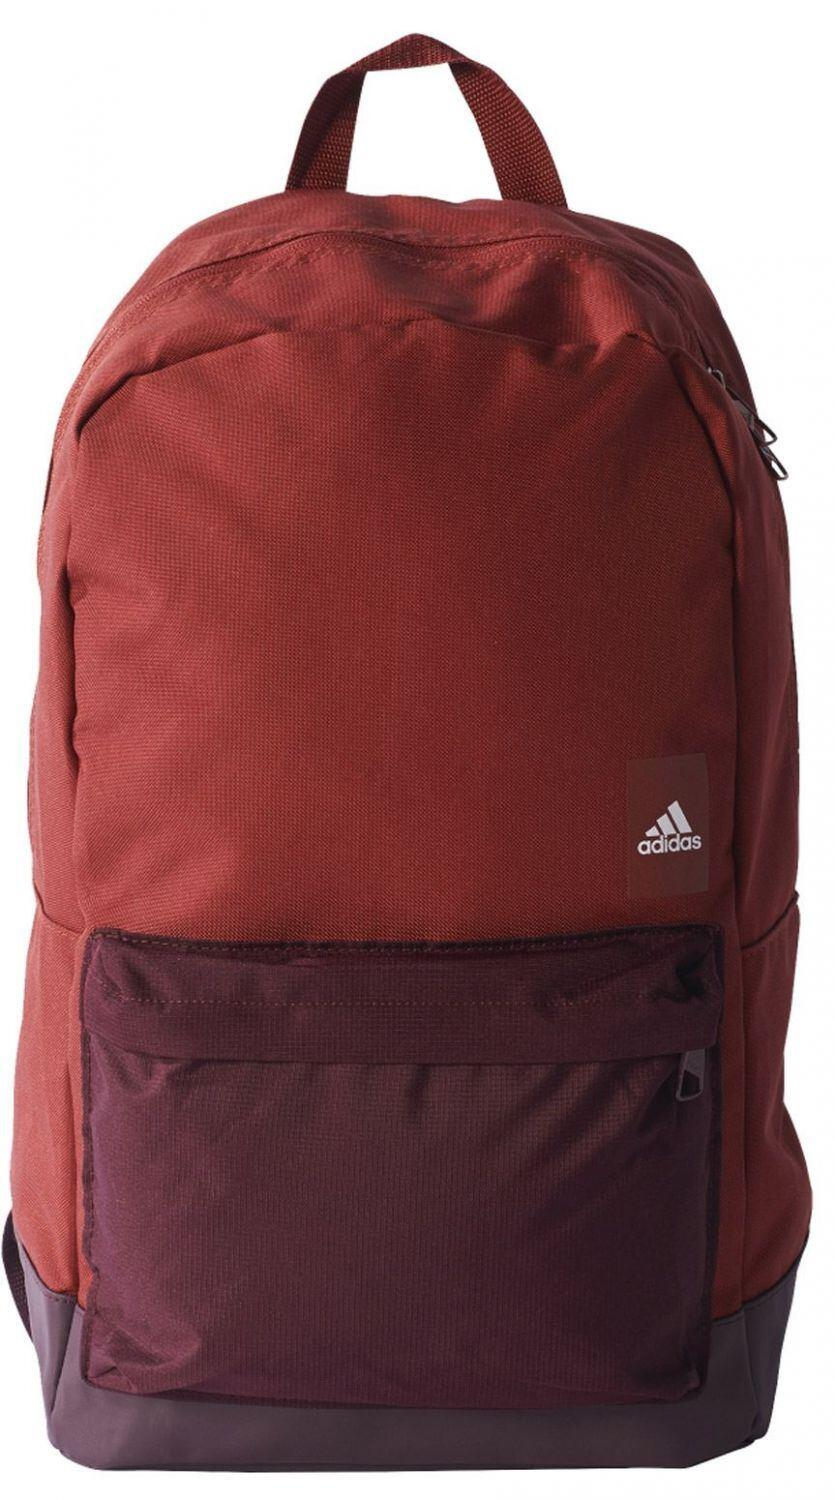 adidas Versatile Backpack Blocked Rucksack